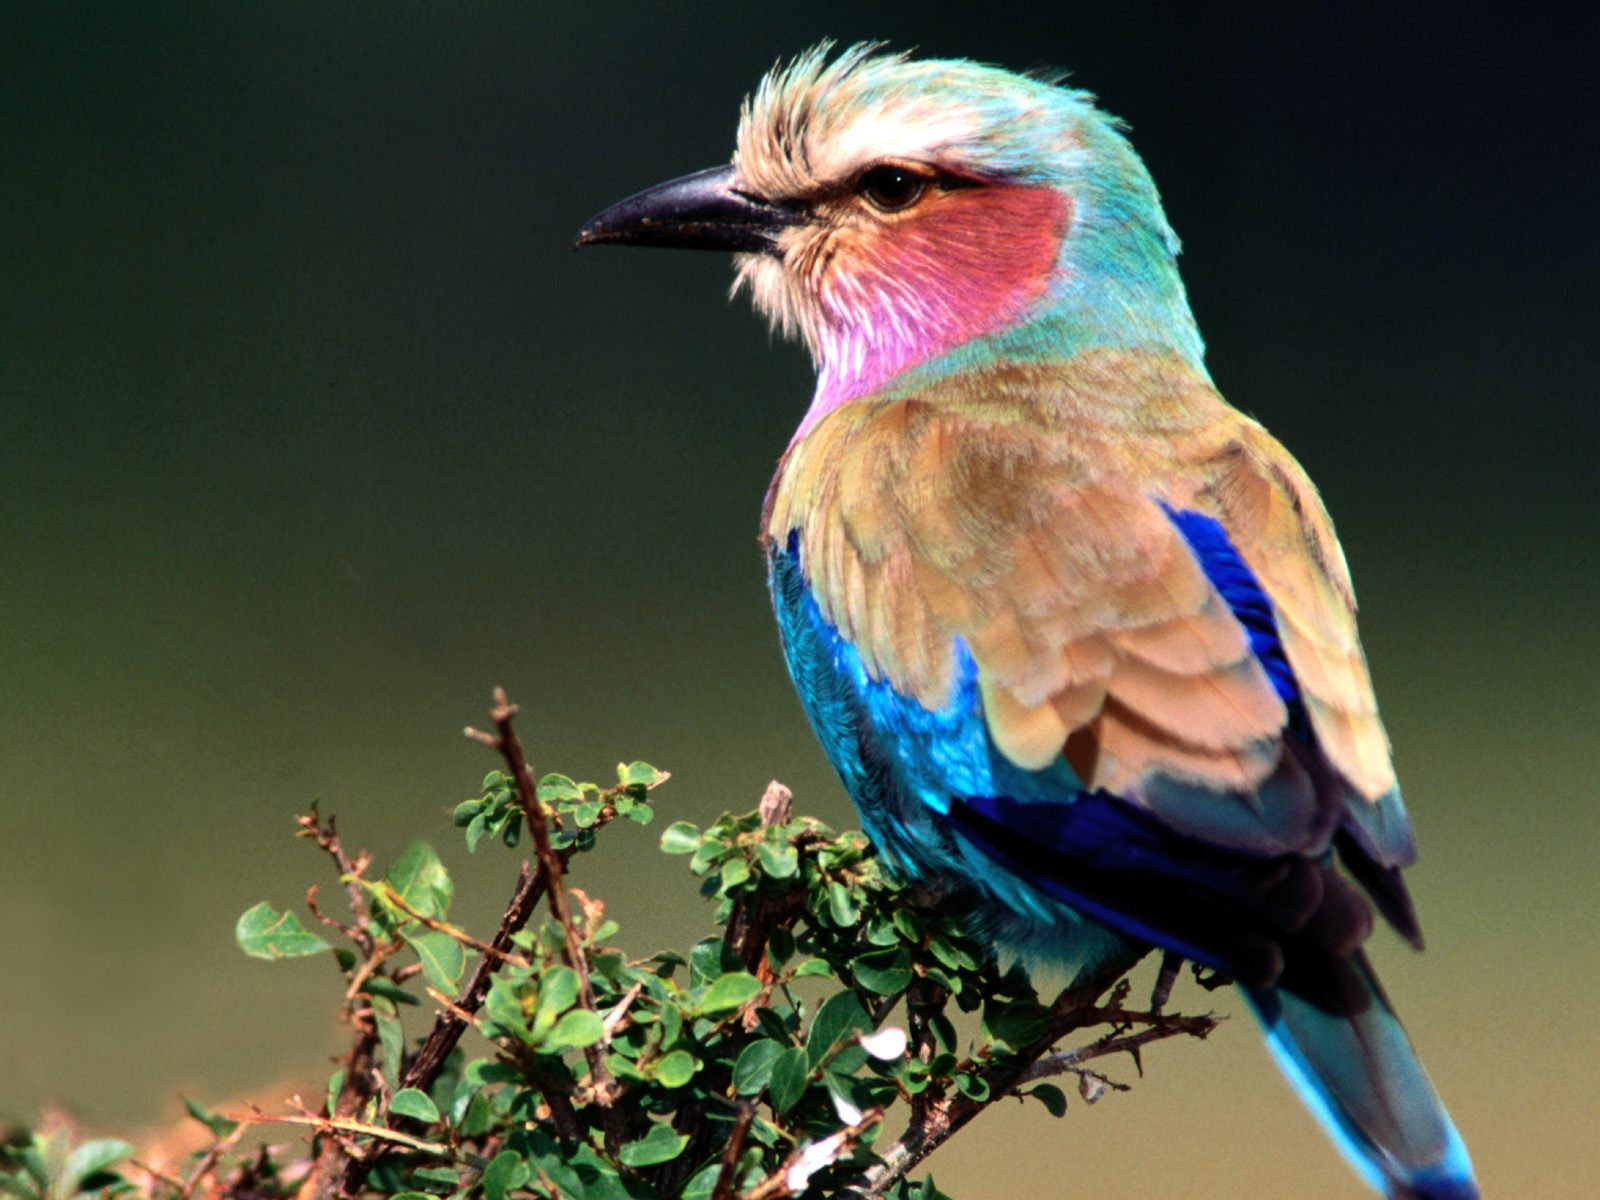 Birds wallpapers hd natural birds wallpapers backgroung - Hd pics of nature with birds ...